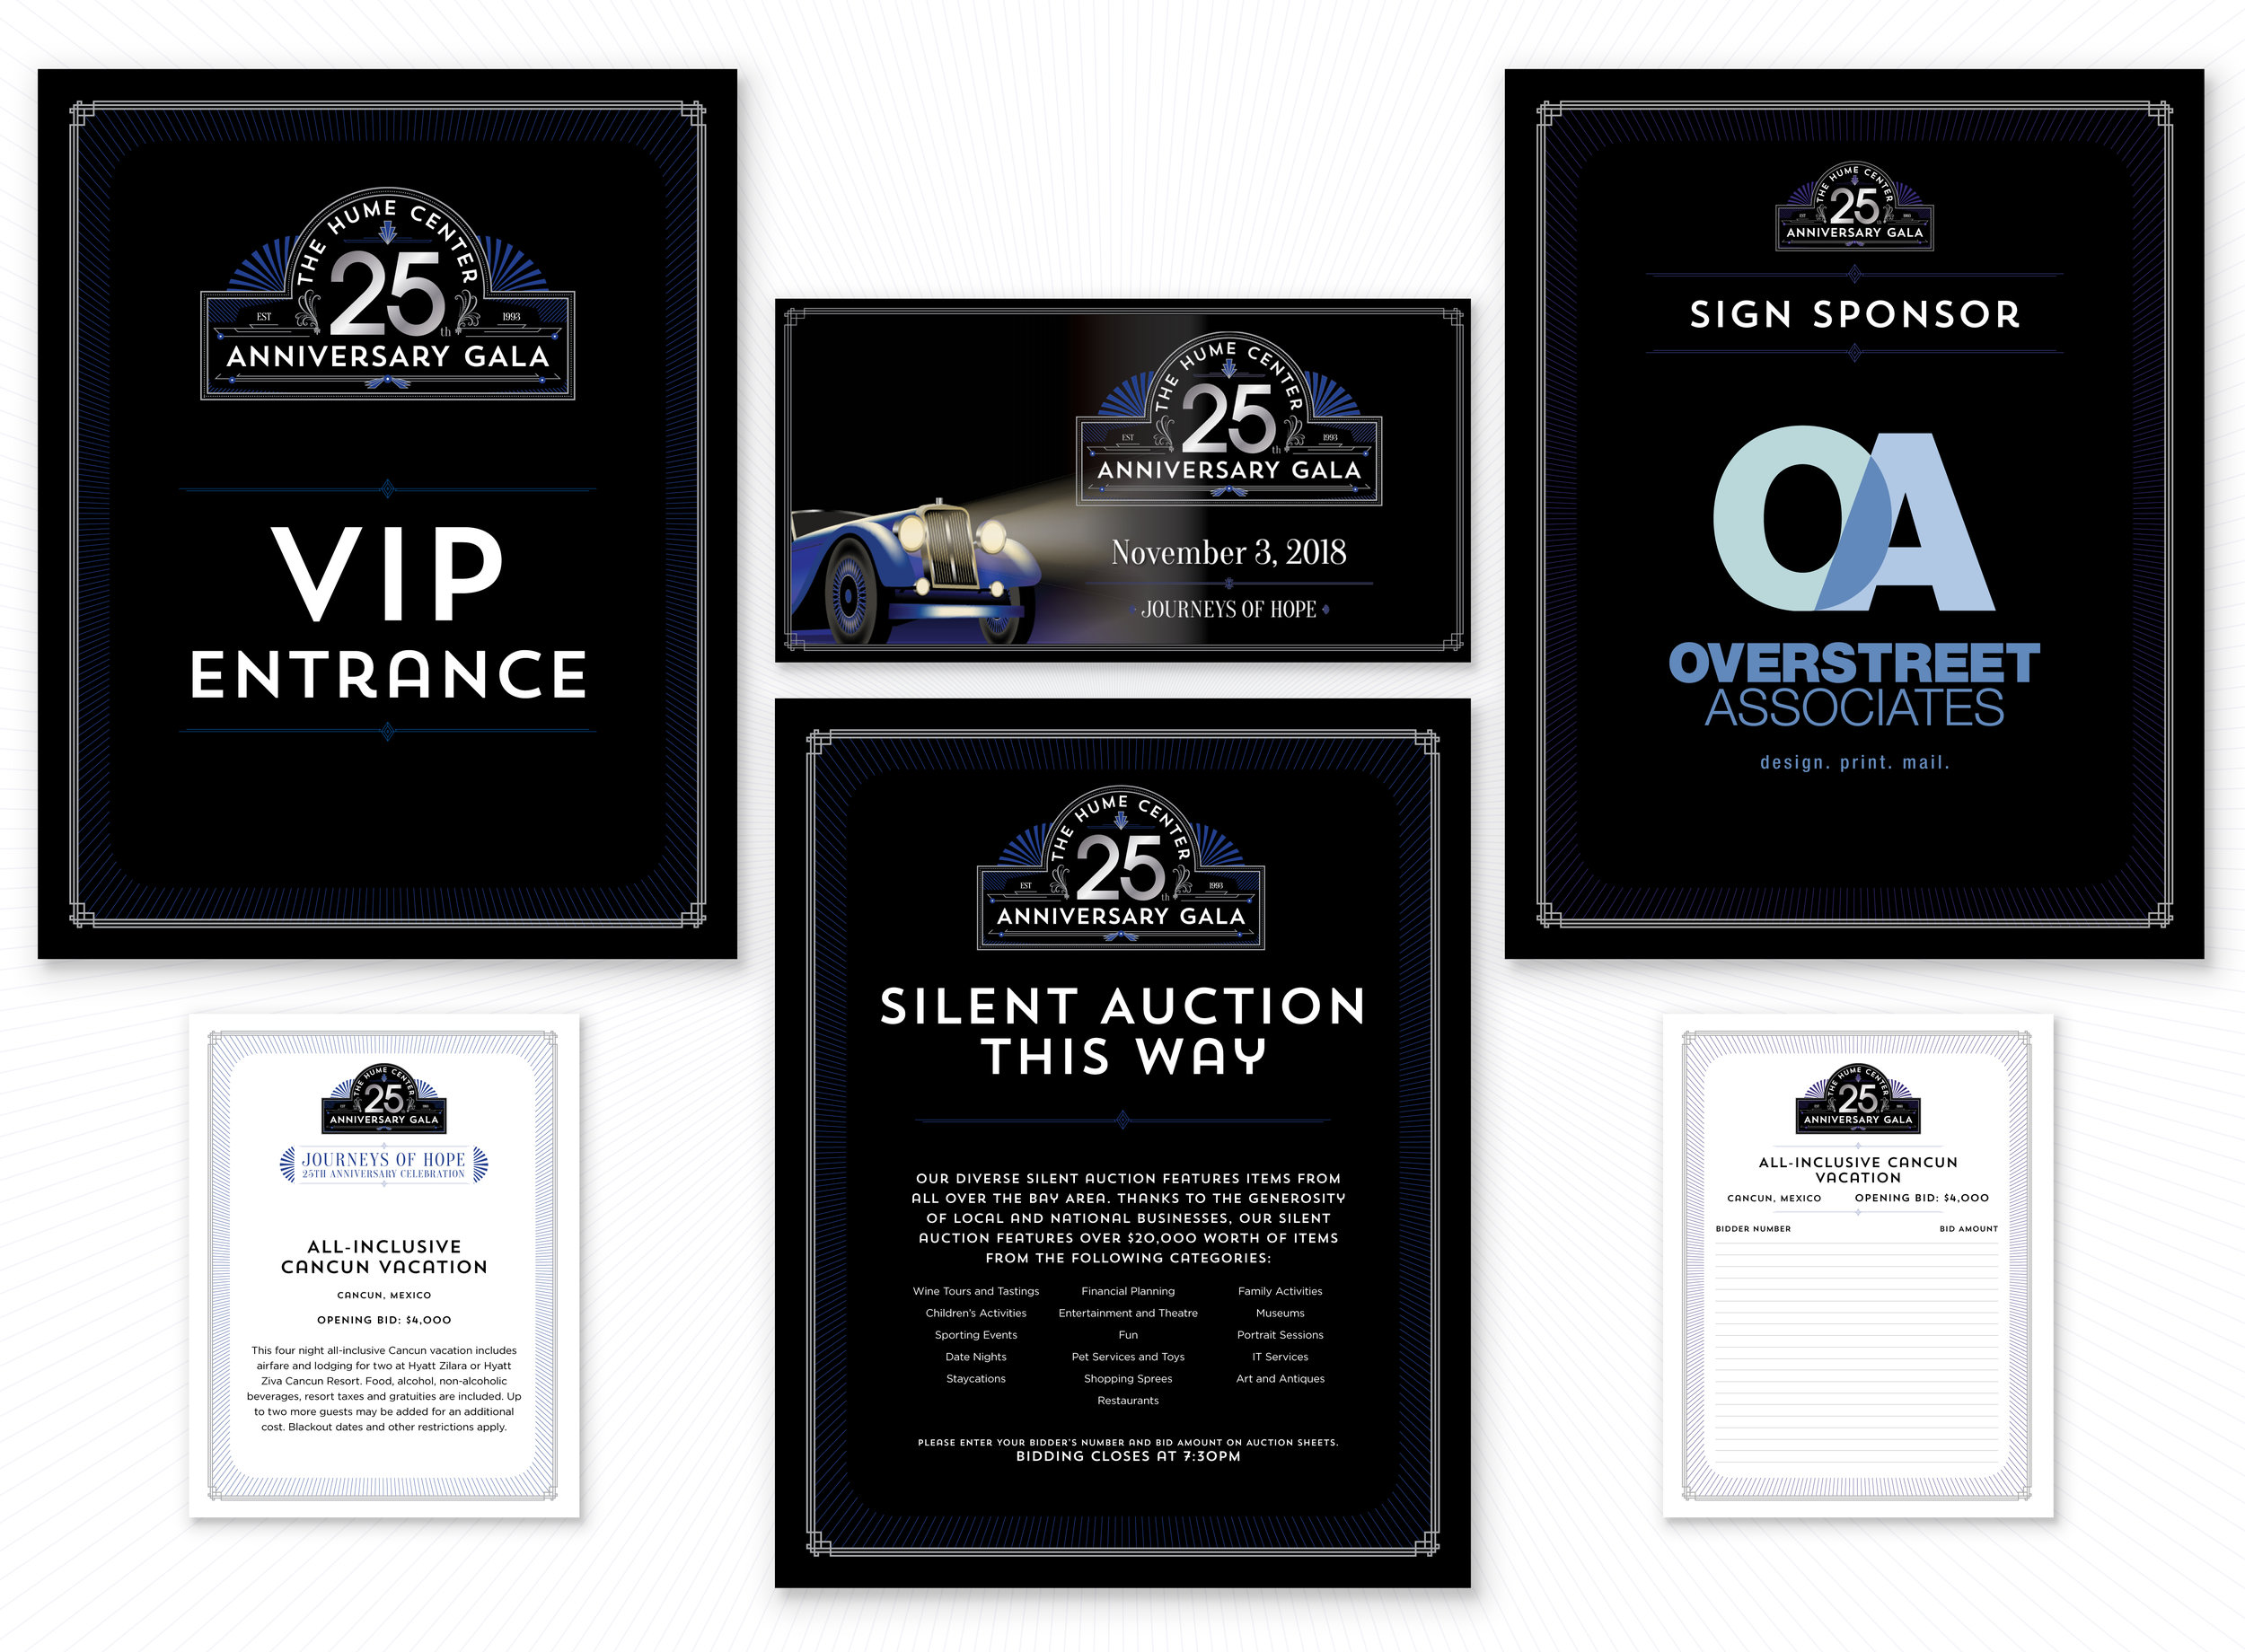 A few of many assets created for the event.   VIP Entrance / Silent Auction Collateral / Facebook Event Cover Image / Sponsor Signs